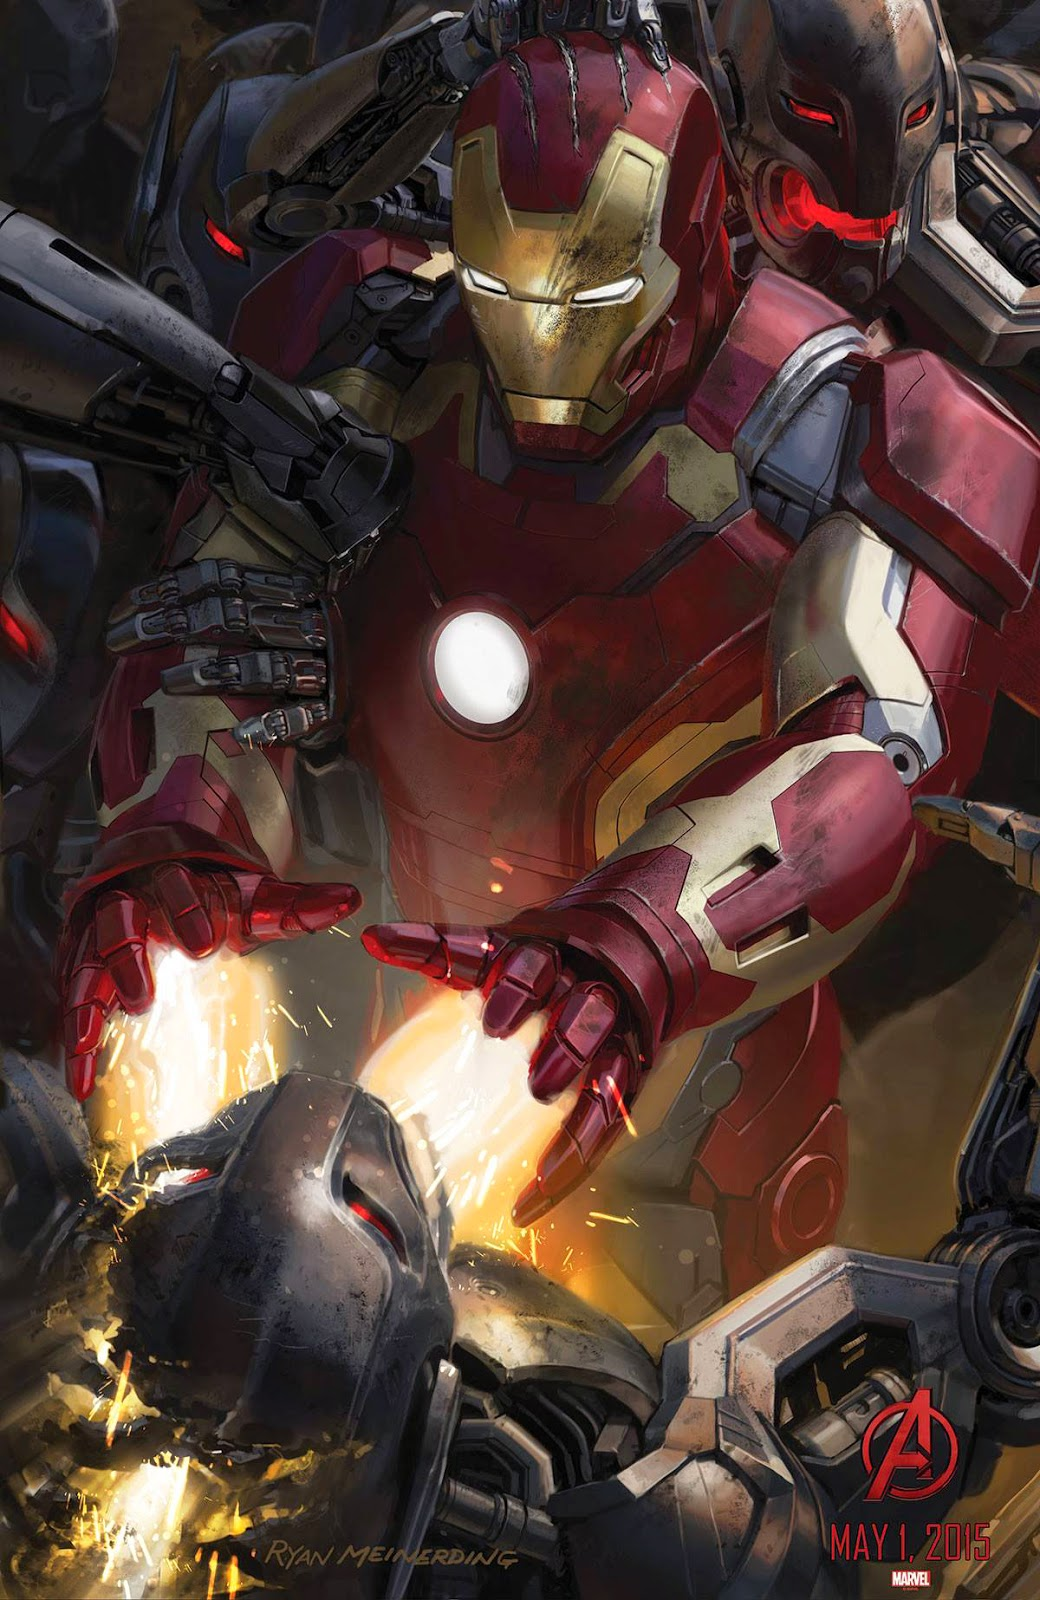 News and rumors on Iron Man from Avengers Age of Ultron